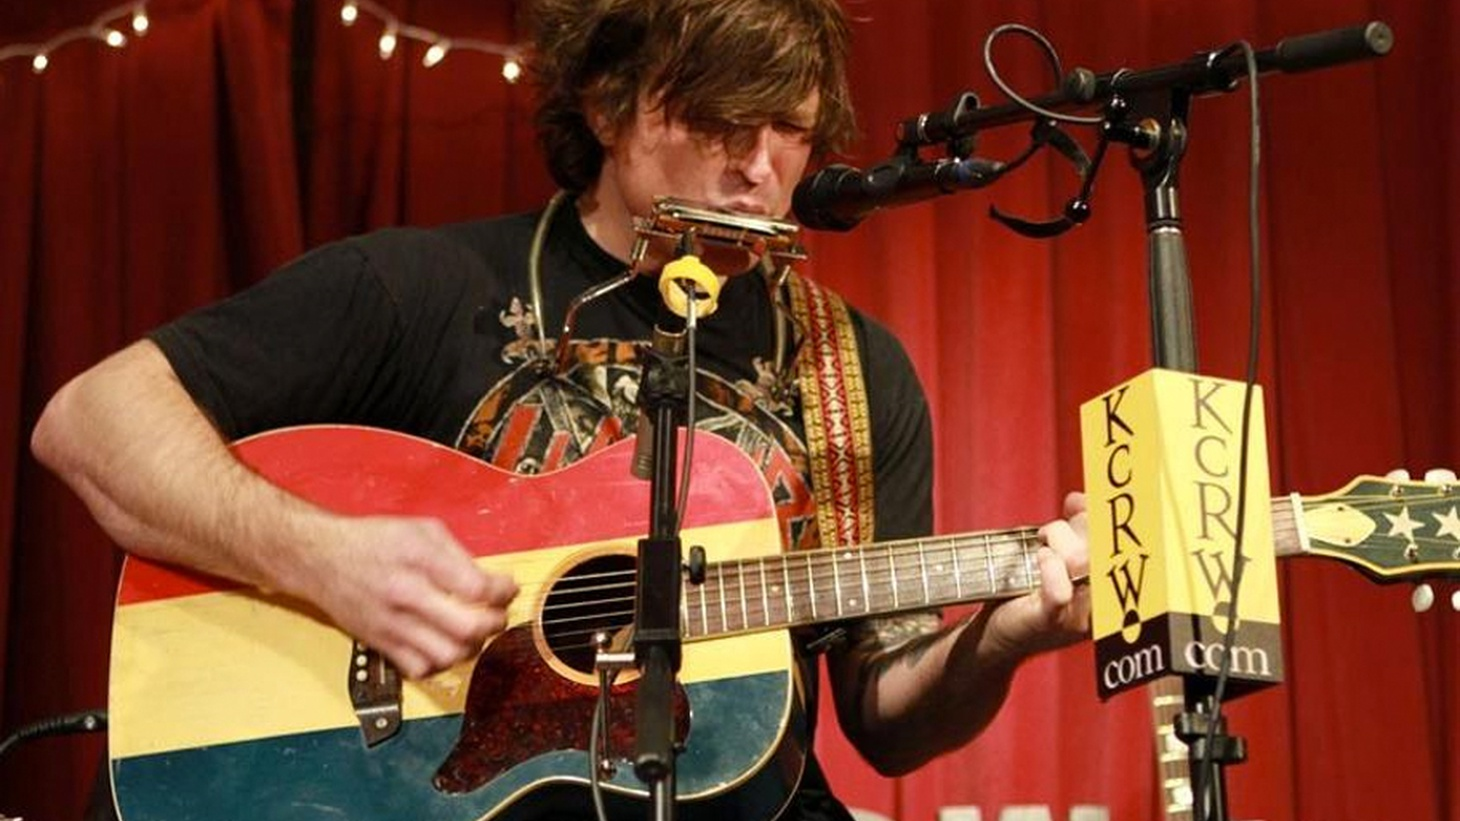 We broadcast an intimate solo performance with singer/songwriter Ryan Adams recorded for KCRW's Apogee Sessions in front of a live audience.